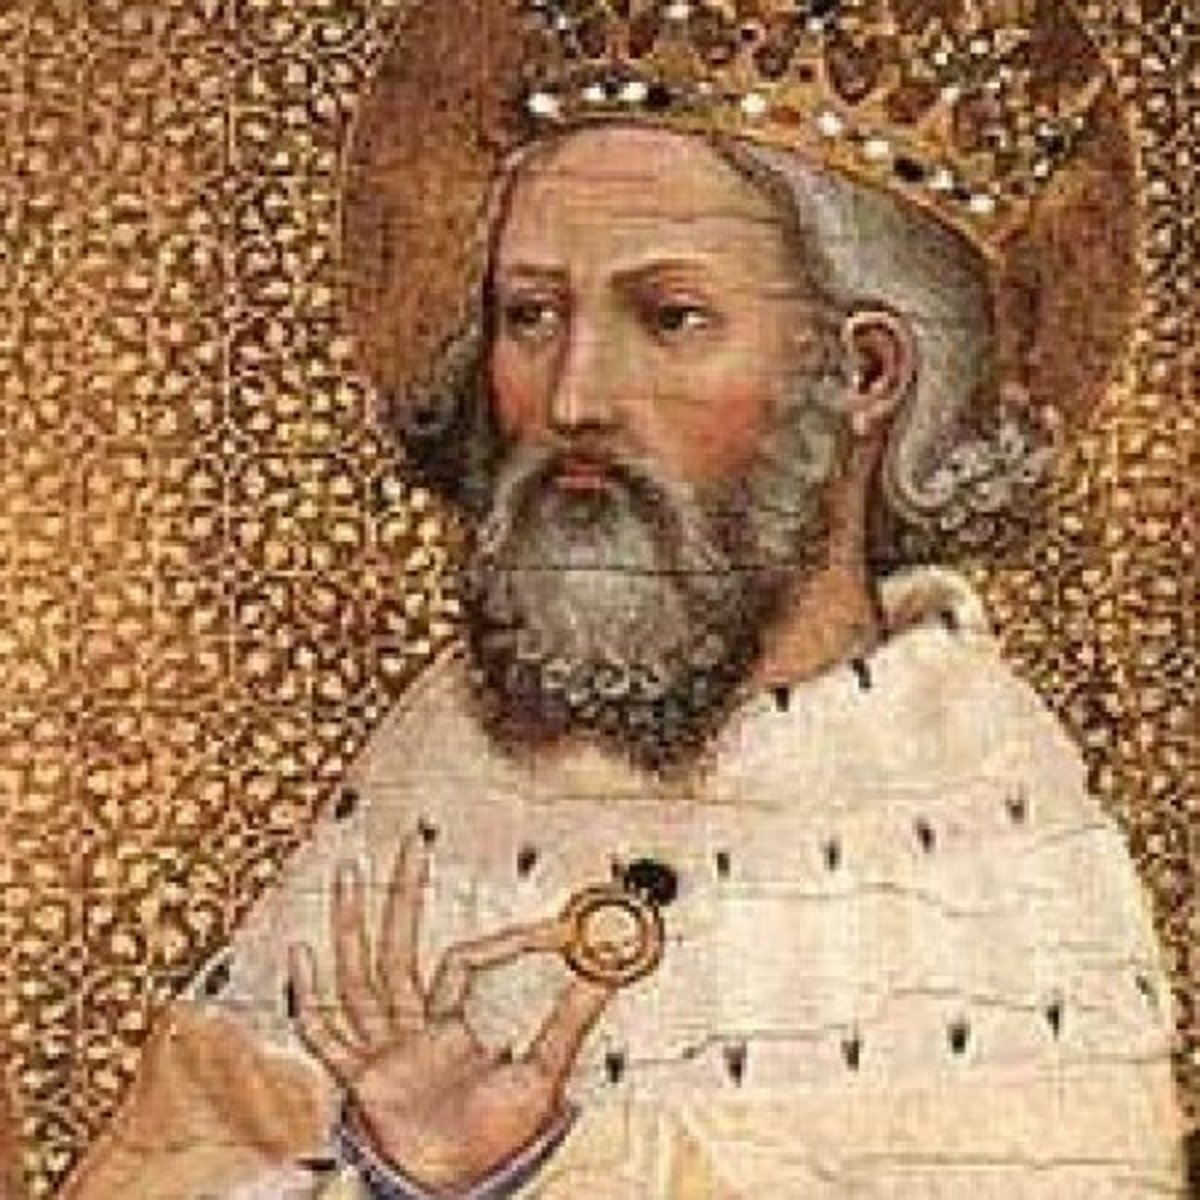 King Eadward favoured Tostig and, pleased with his brother-in-law's administration in Northumbria, was reluctant to stand by and lose face through his protege